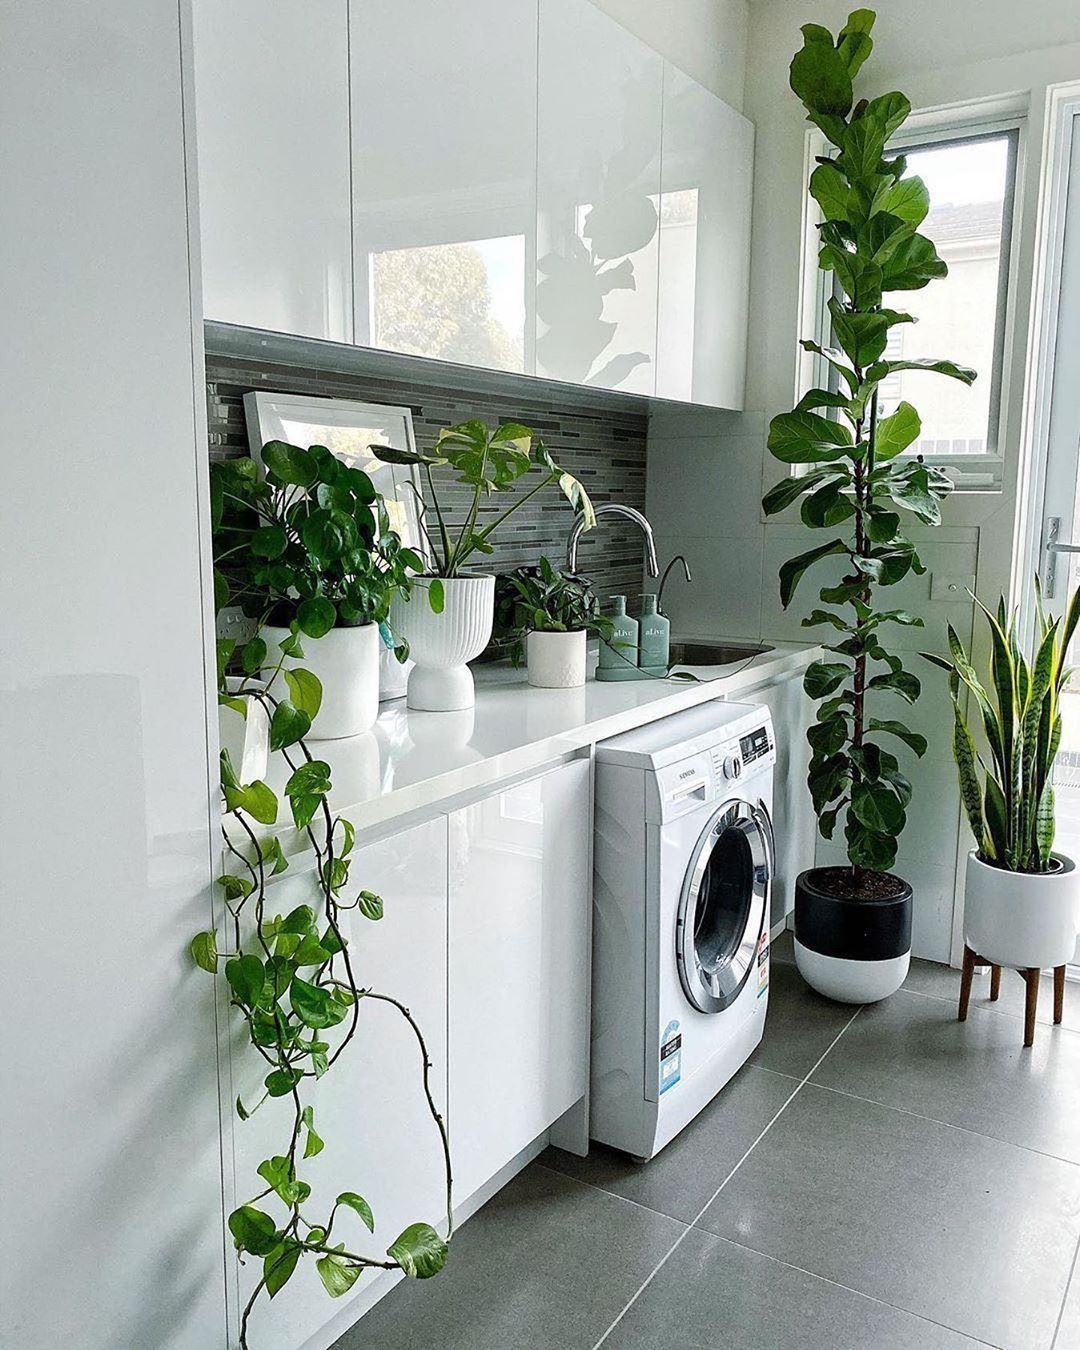 I Plant Even On Instagram If Our Laundry Room Looked Like This Maybe We D Actually Get Some Done Via The Int In 2020 Laundry Room Laundry Room Decor Laundry